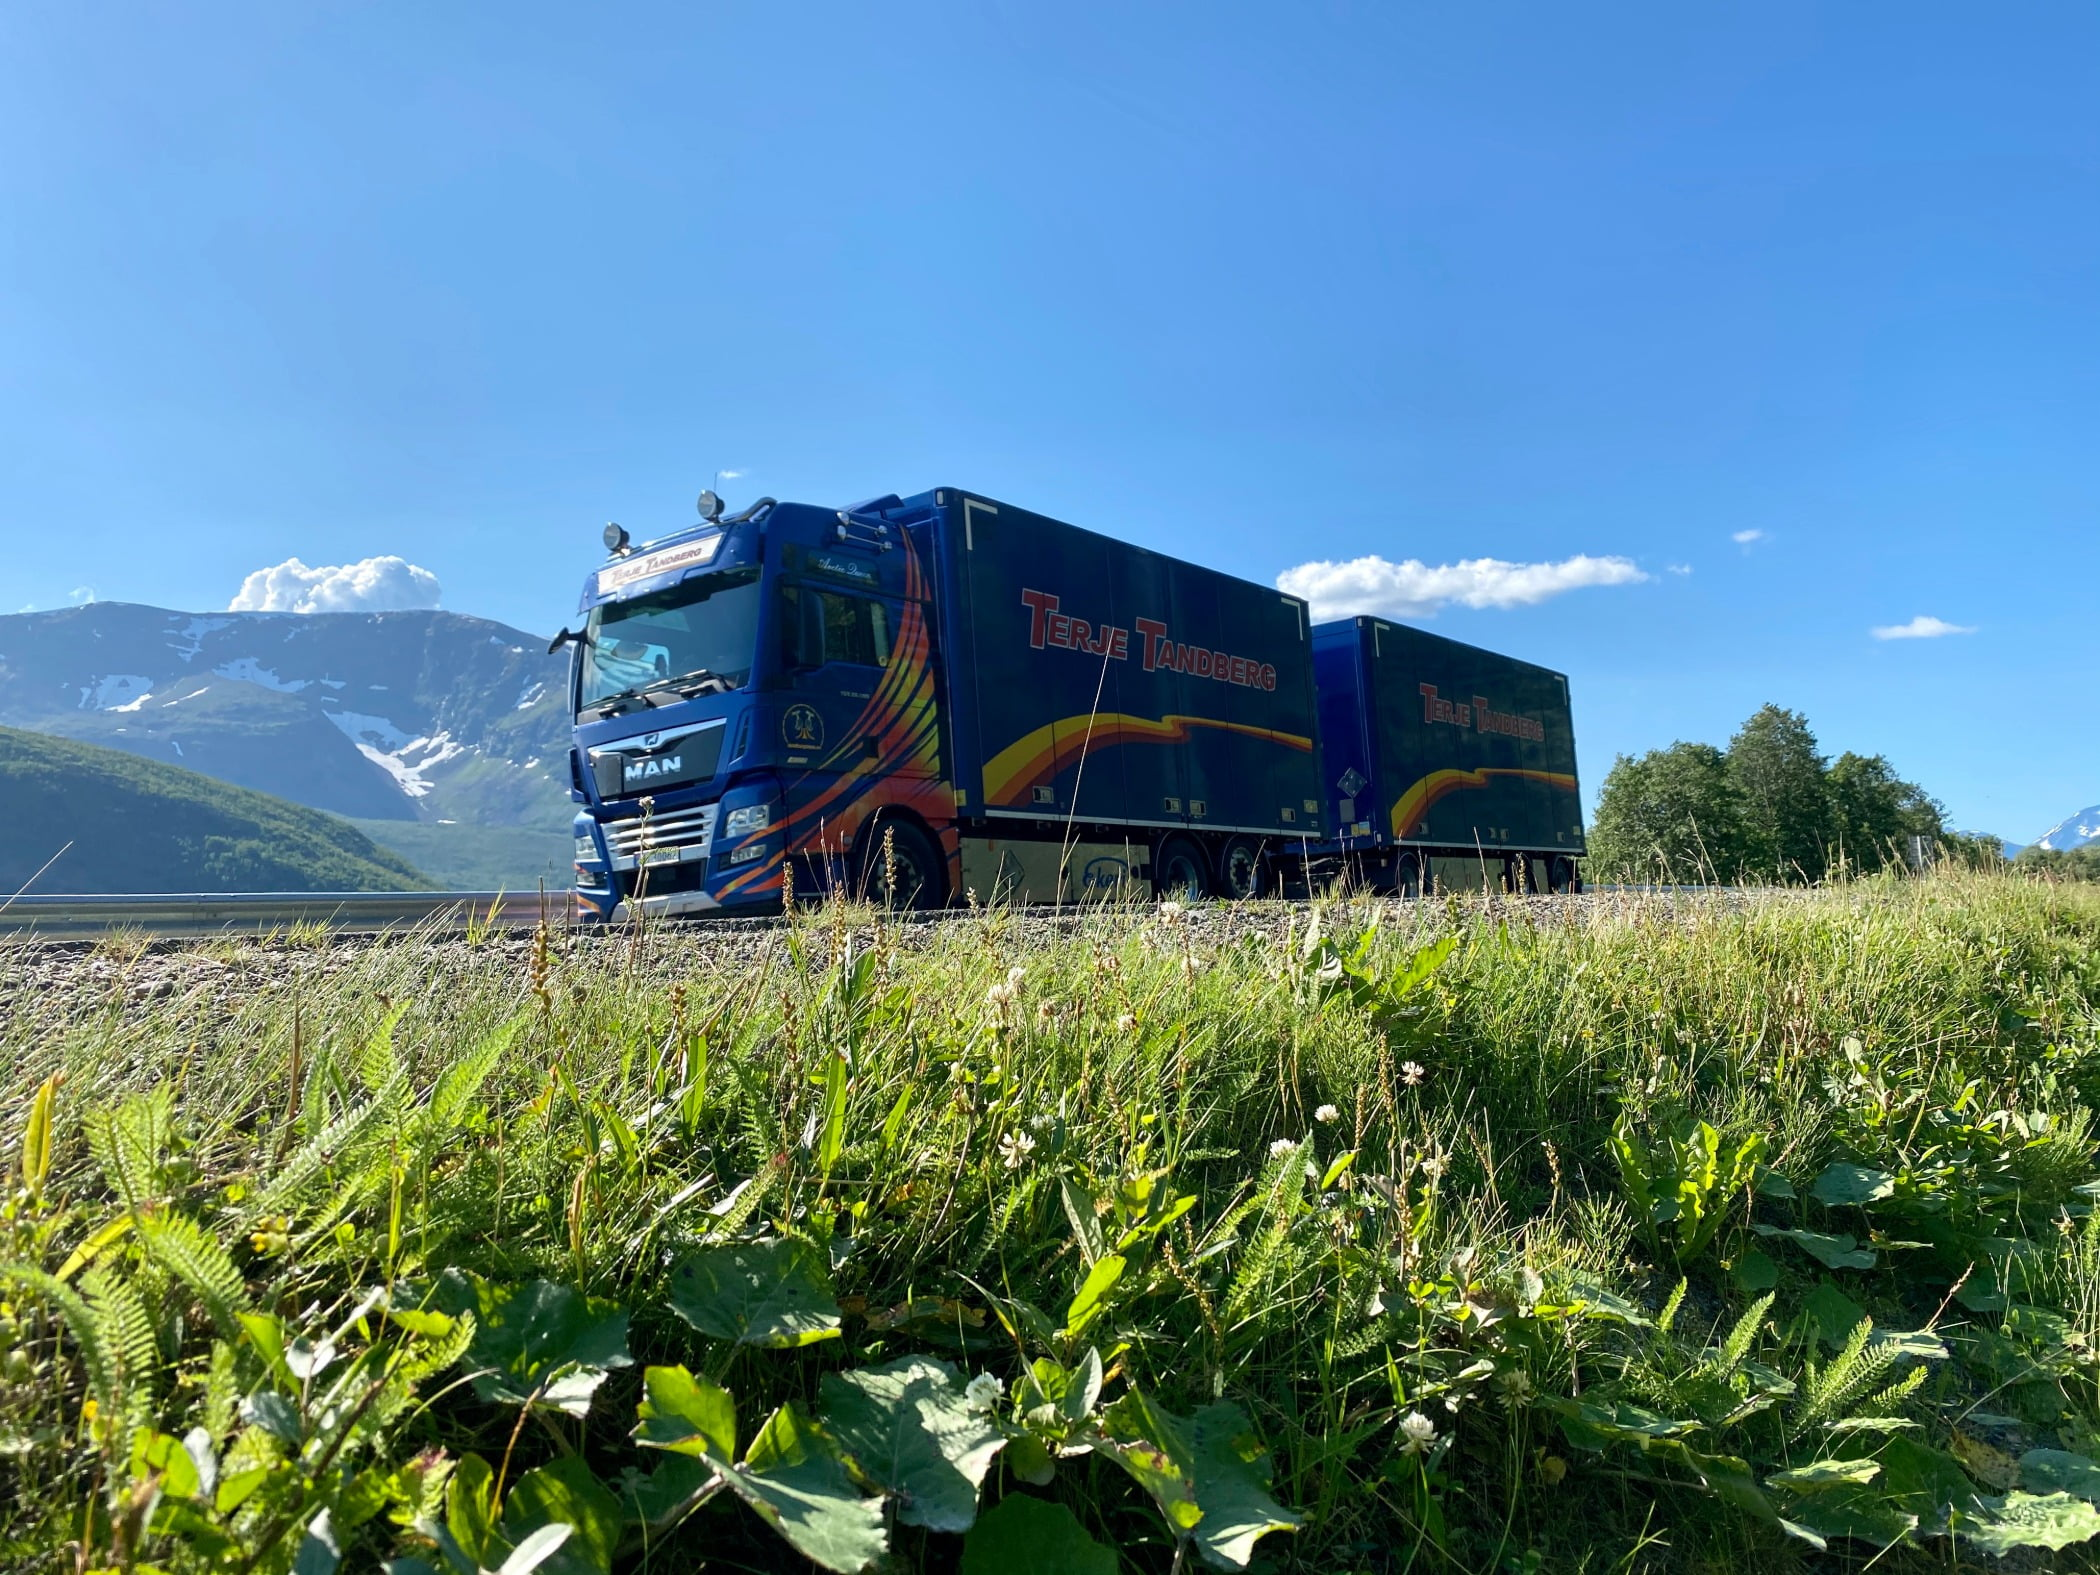 Freight transport, trailer truck, Rural area, Commercial vehicle, Crop, Plantation, Field, Farm, Agriculture